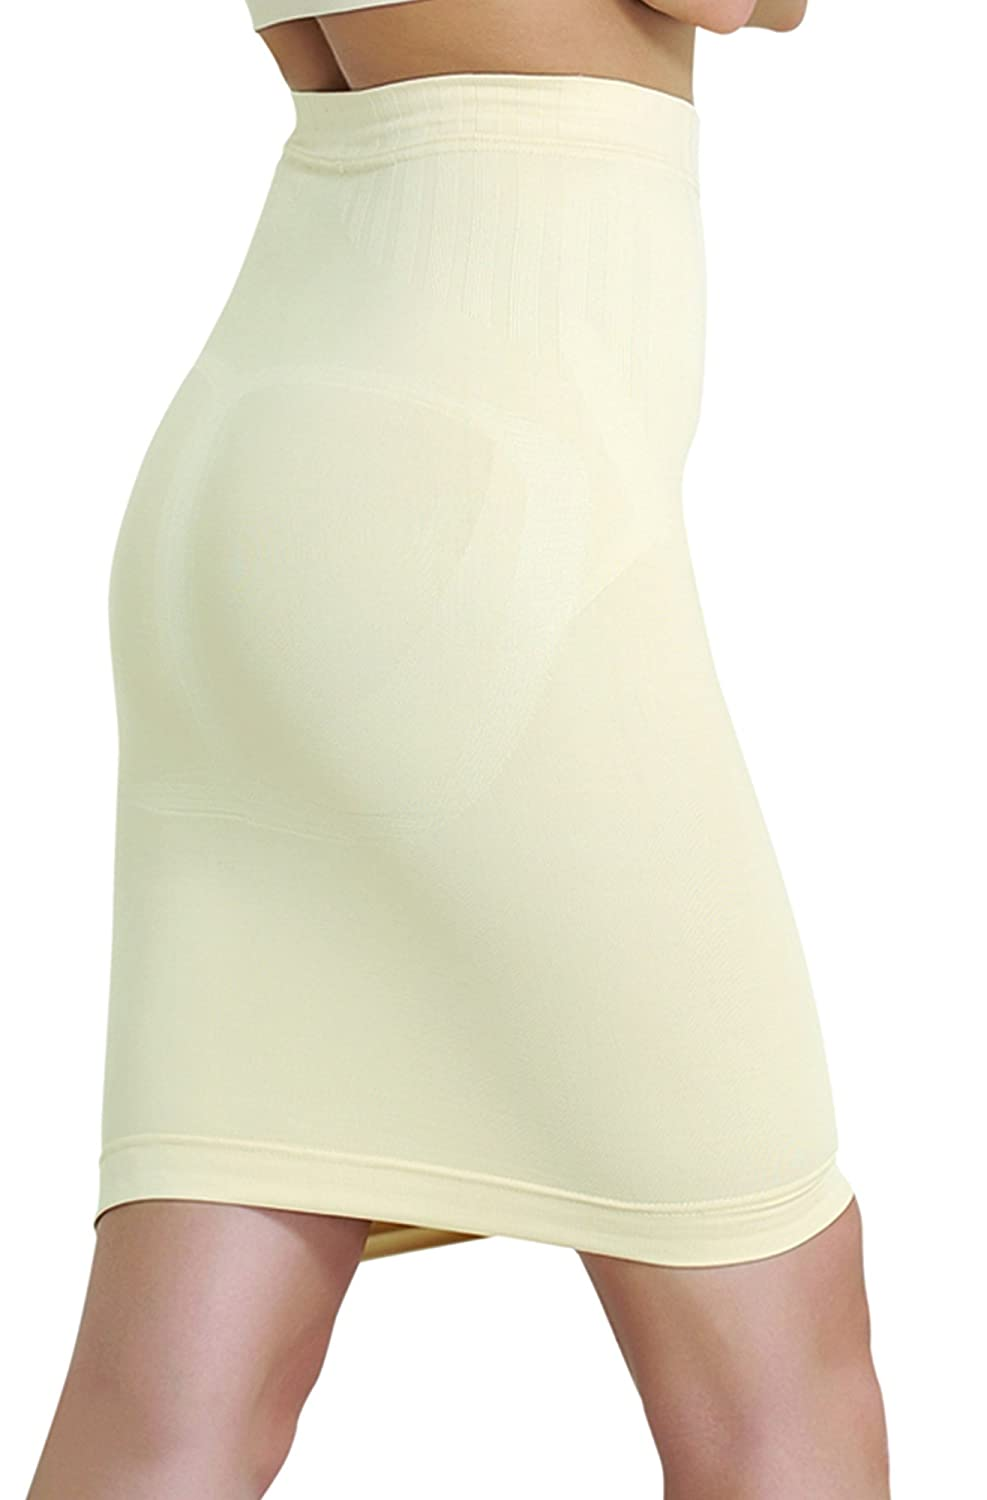 UnsichtBra Women`s Skirt Shapewear, high-Waisted